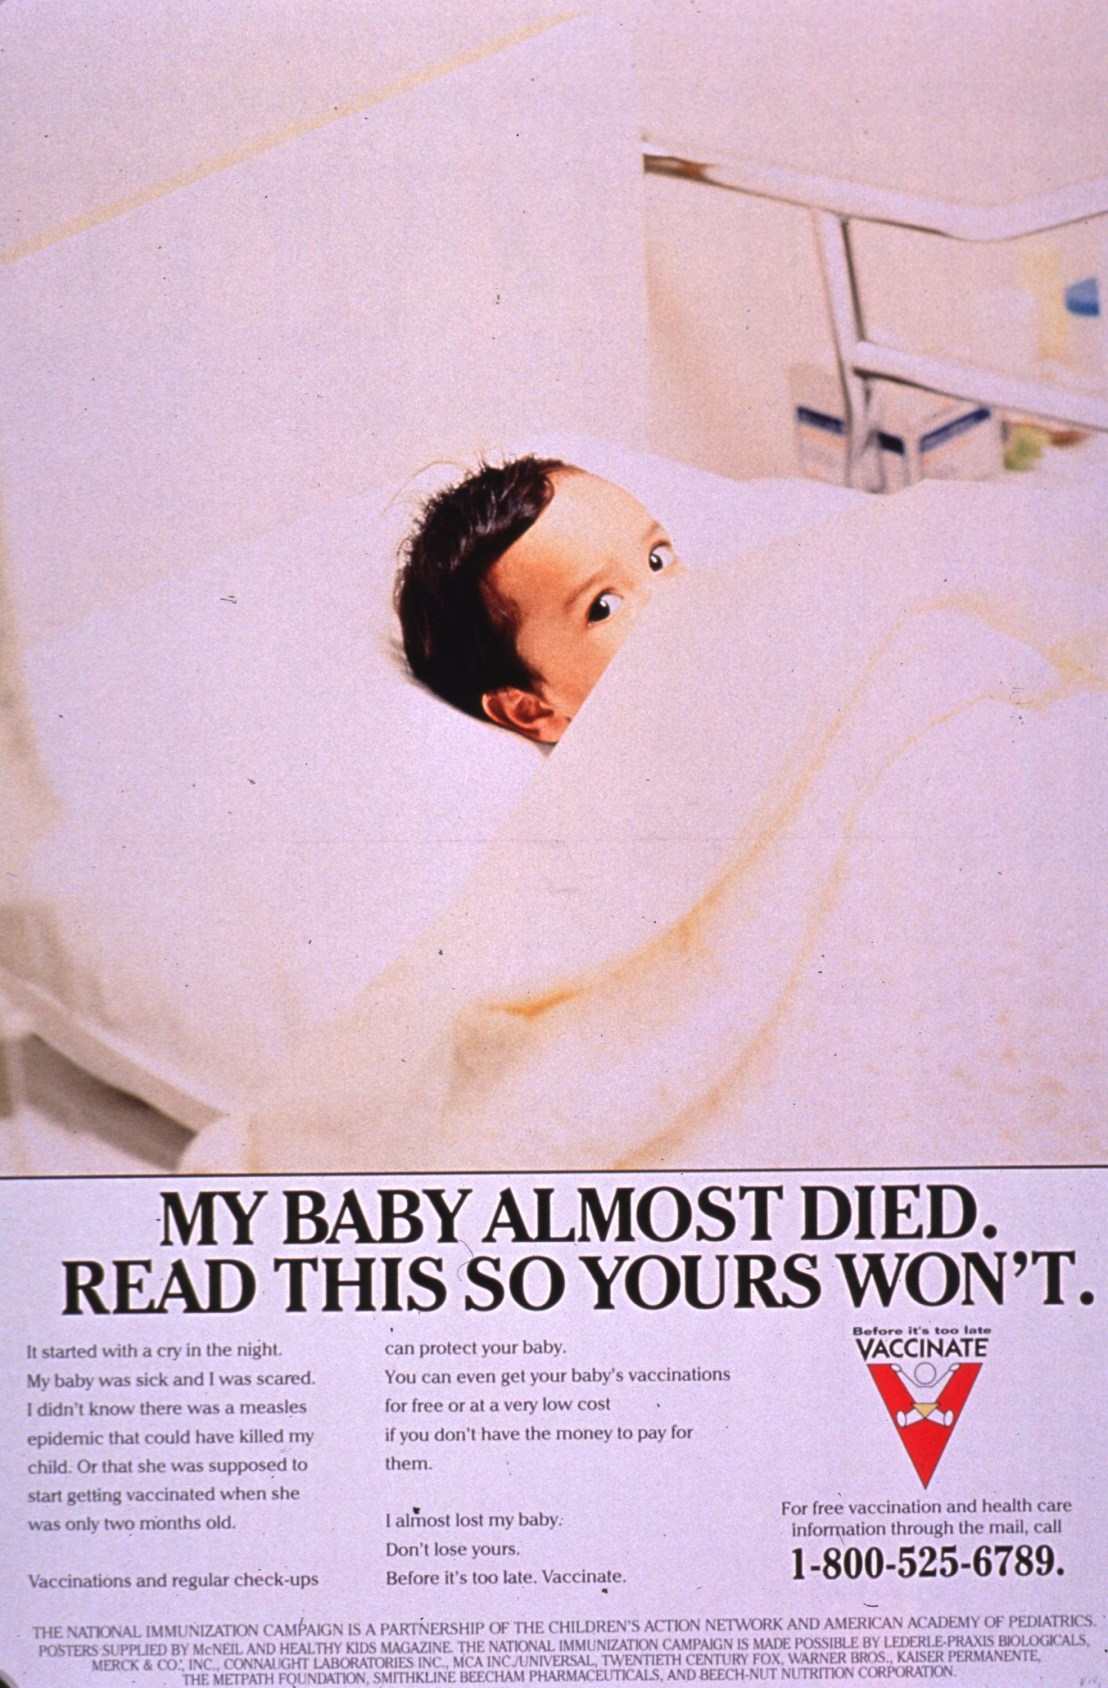 Before it's too late. Vaccinate.